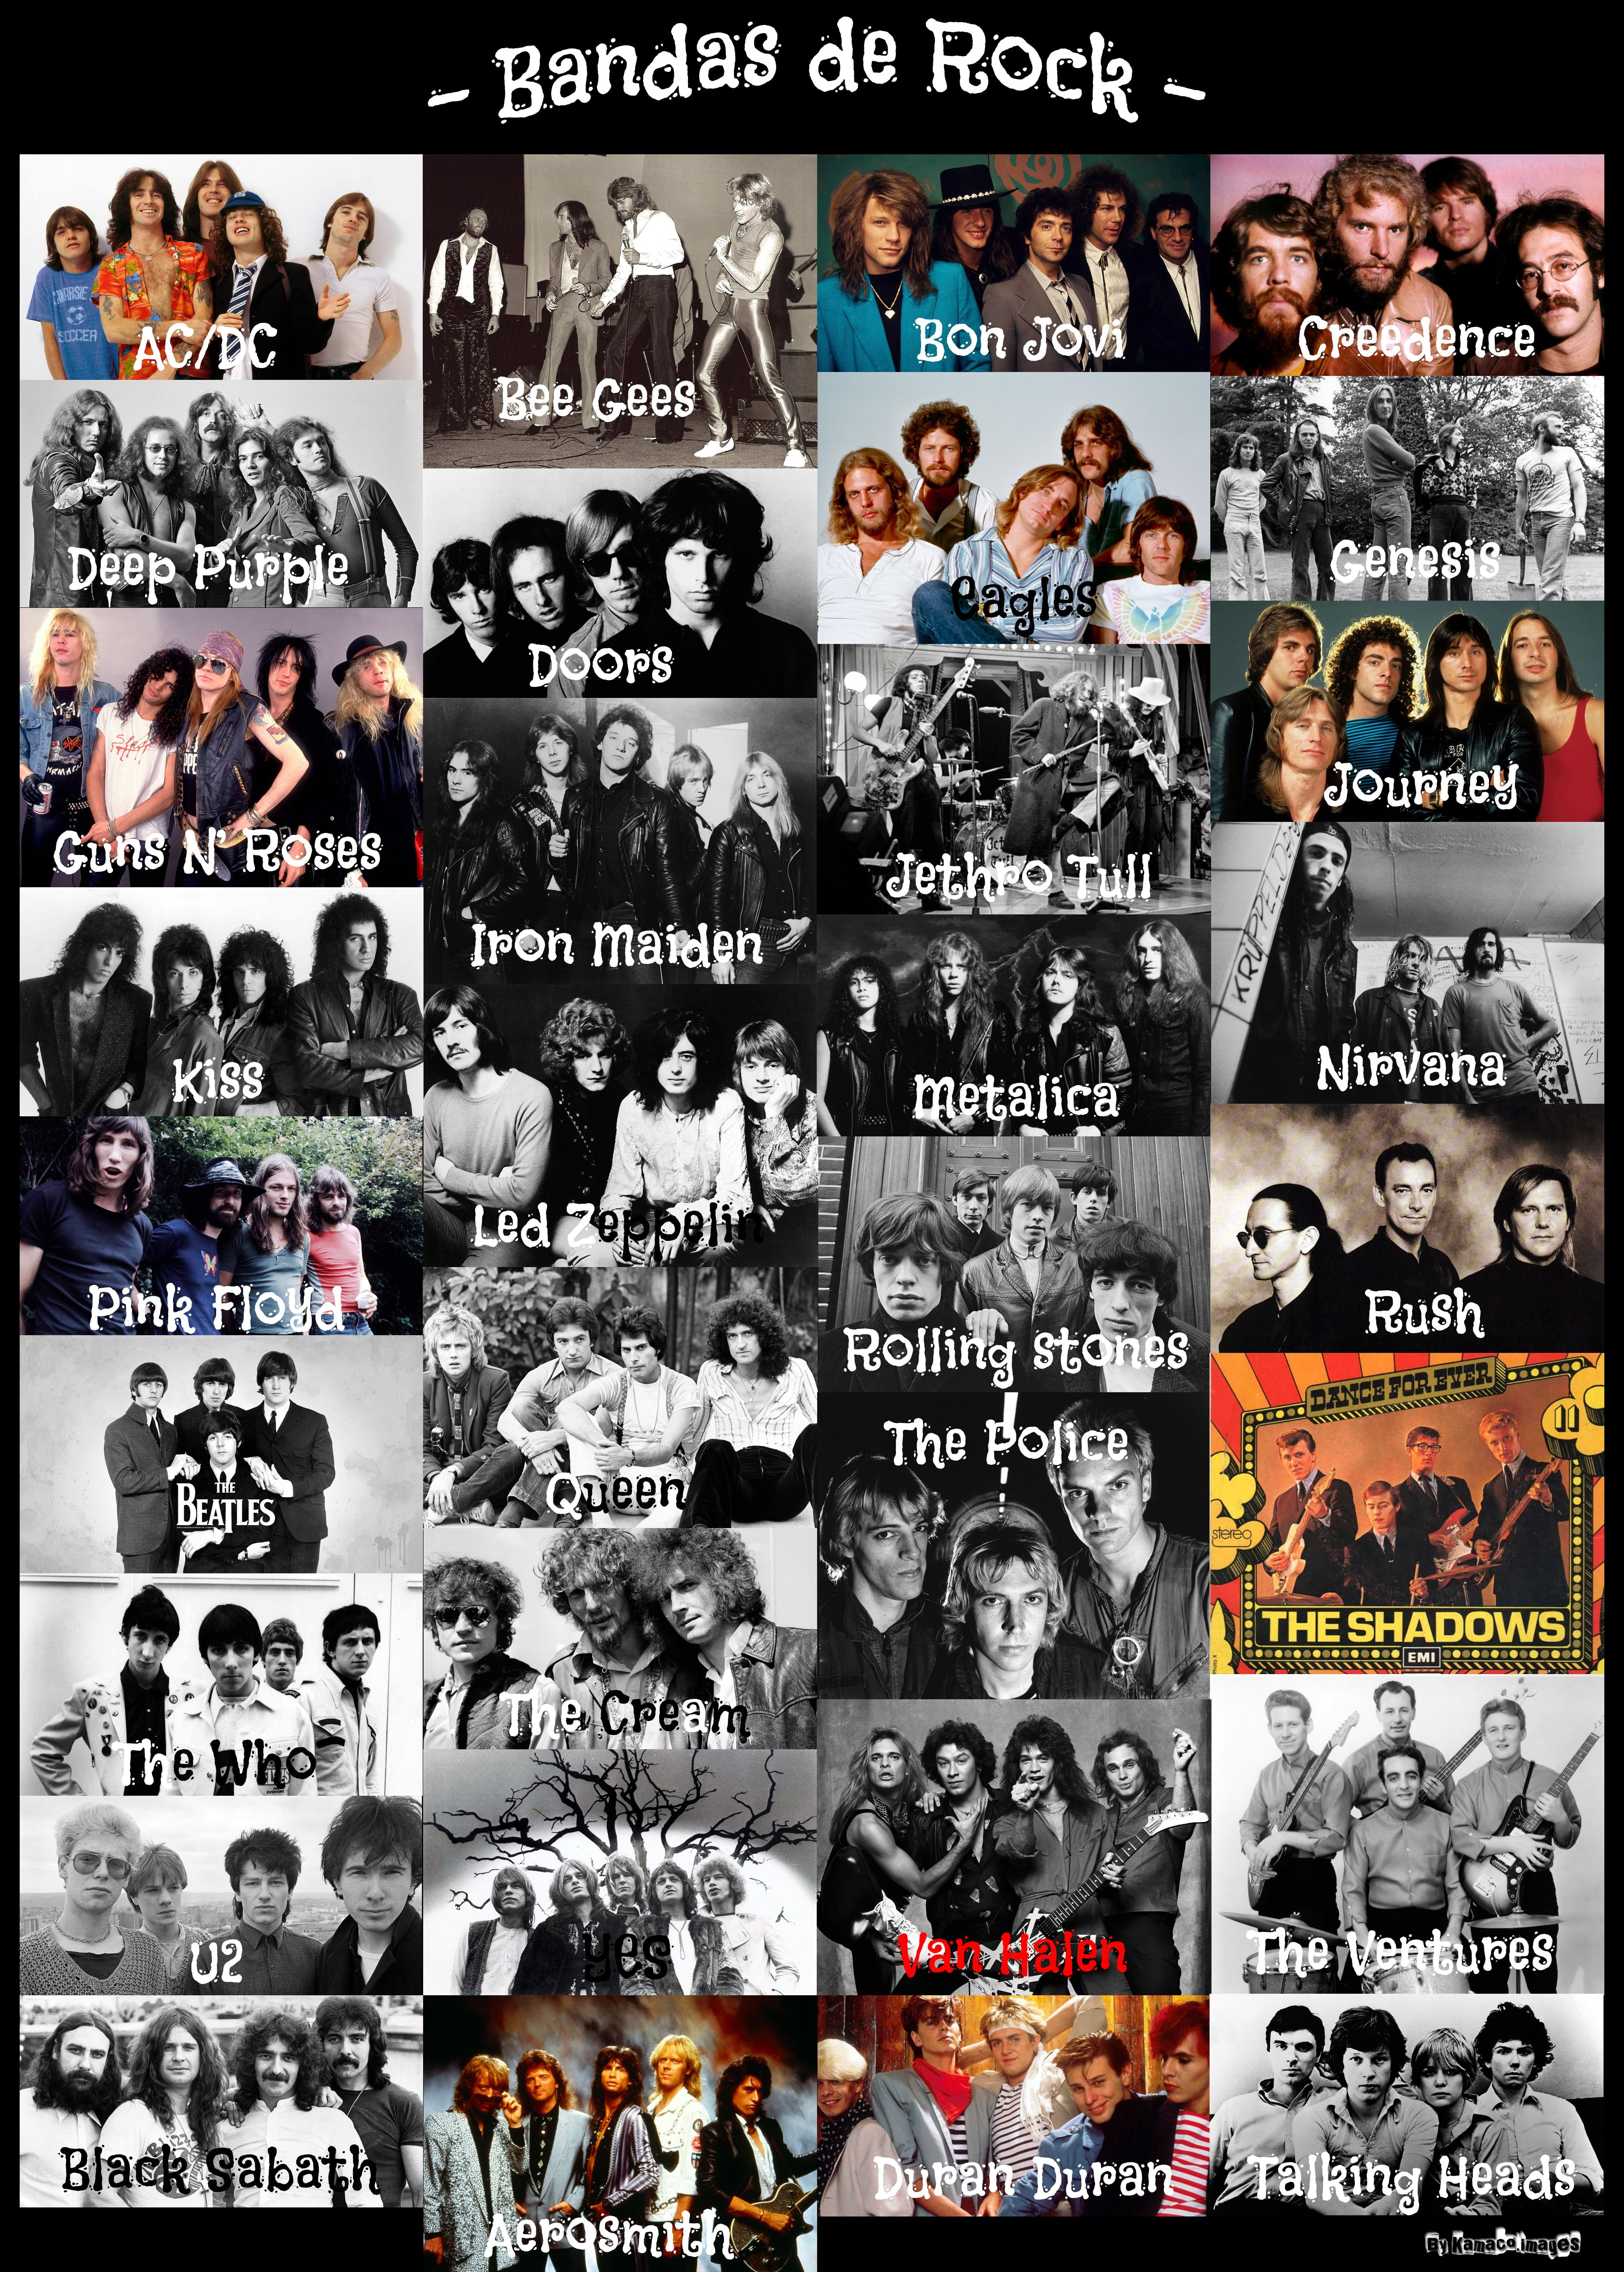 Bandas De Rock Illustration Photoshop People Men Band Poster